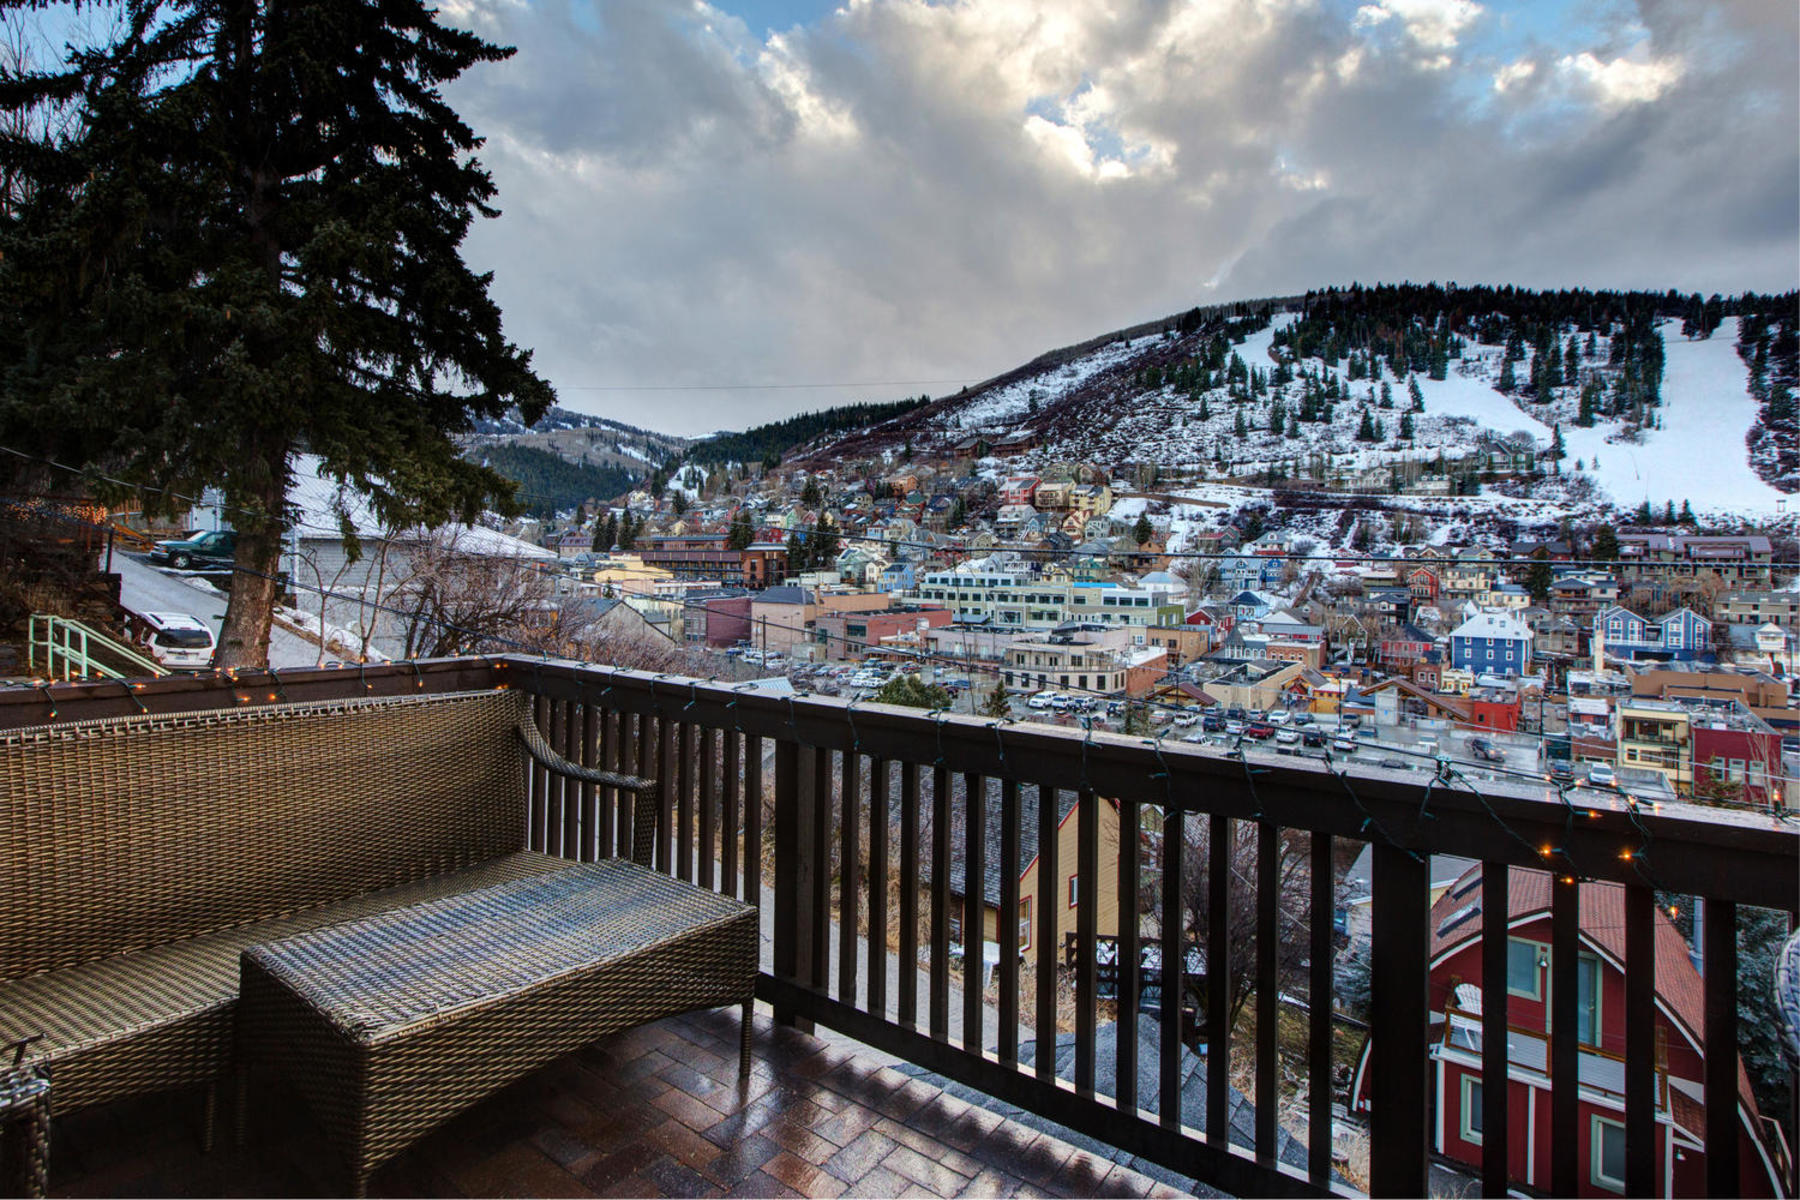 단독 가정 주택 용 매매 에 Beautifully Appointed with Ski Run Views 428 Ontario Ave Park City, 유타, 84060 미국